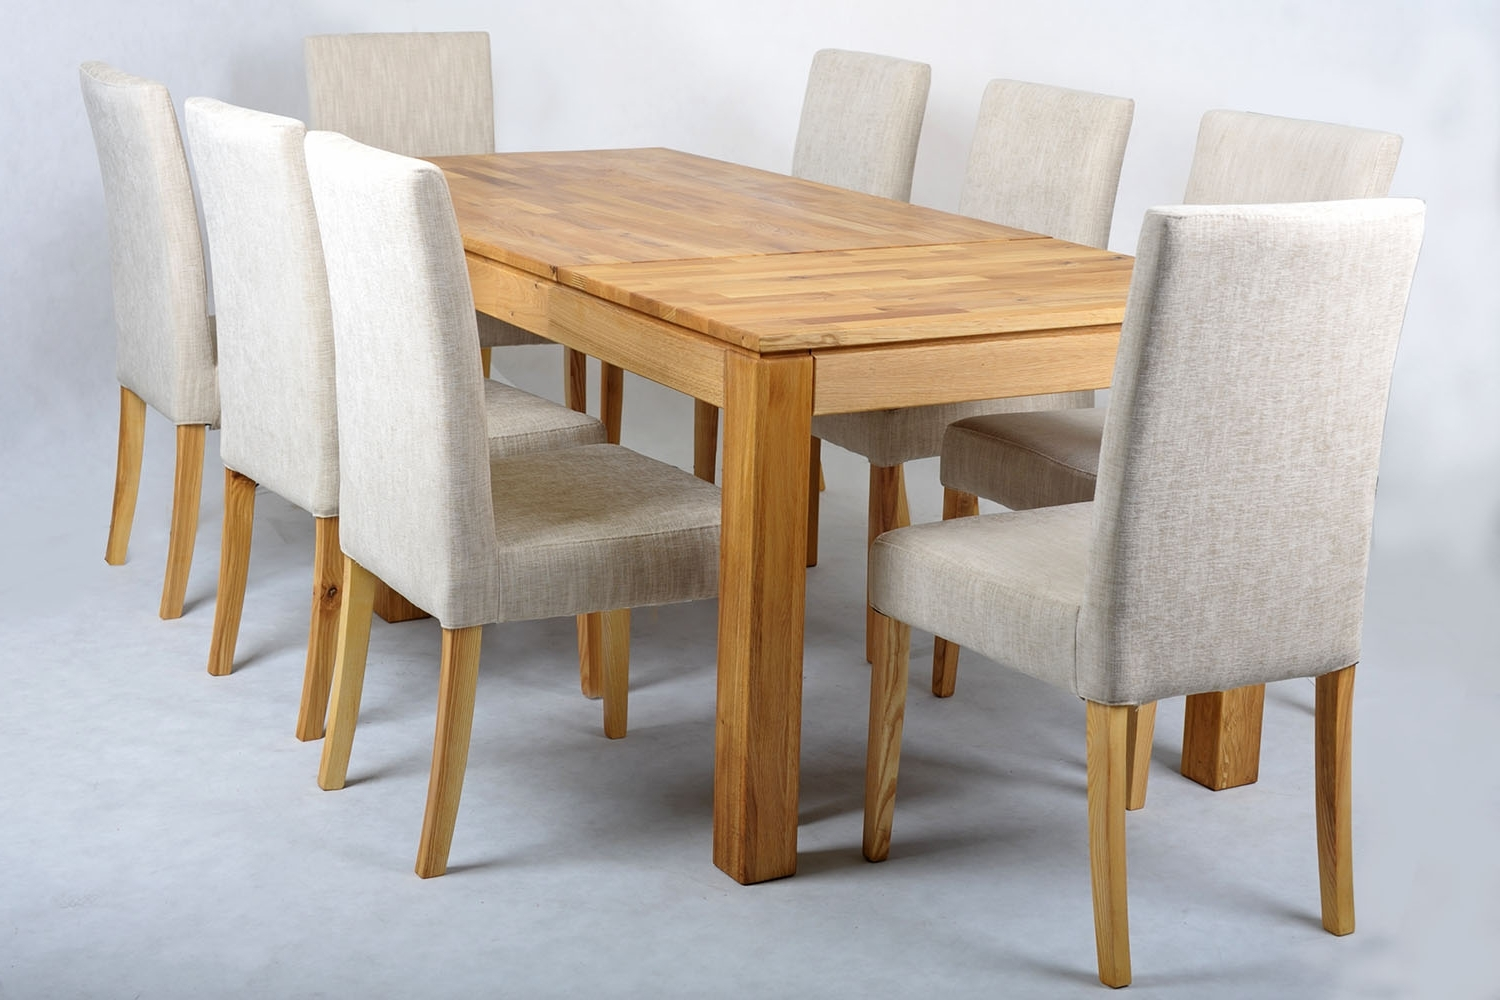 Extending Dining Table Sets Uk, Extended Dining Table Sets for Most Up-to-Date Oak Extending Dining Tables And 6 Chairs